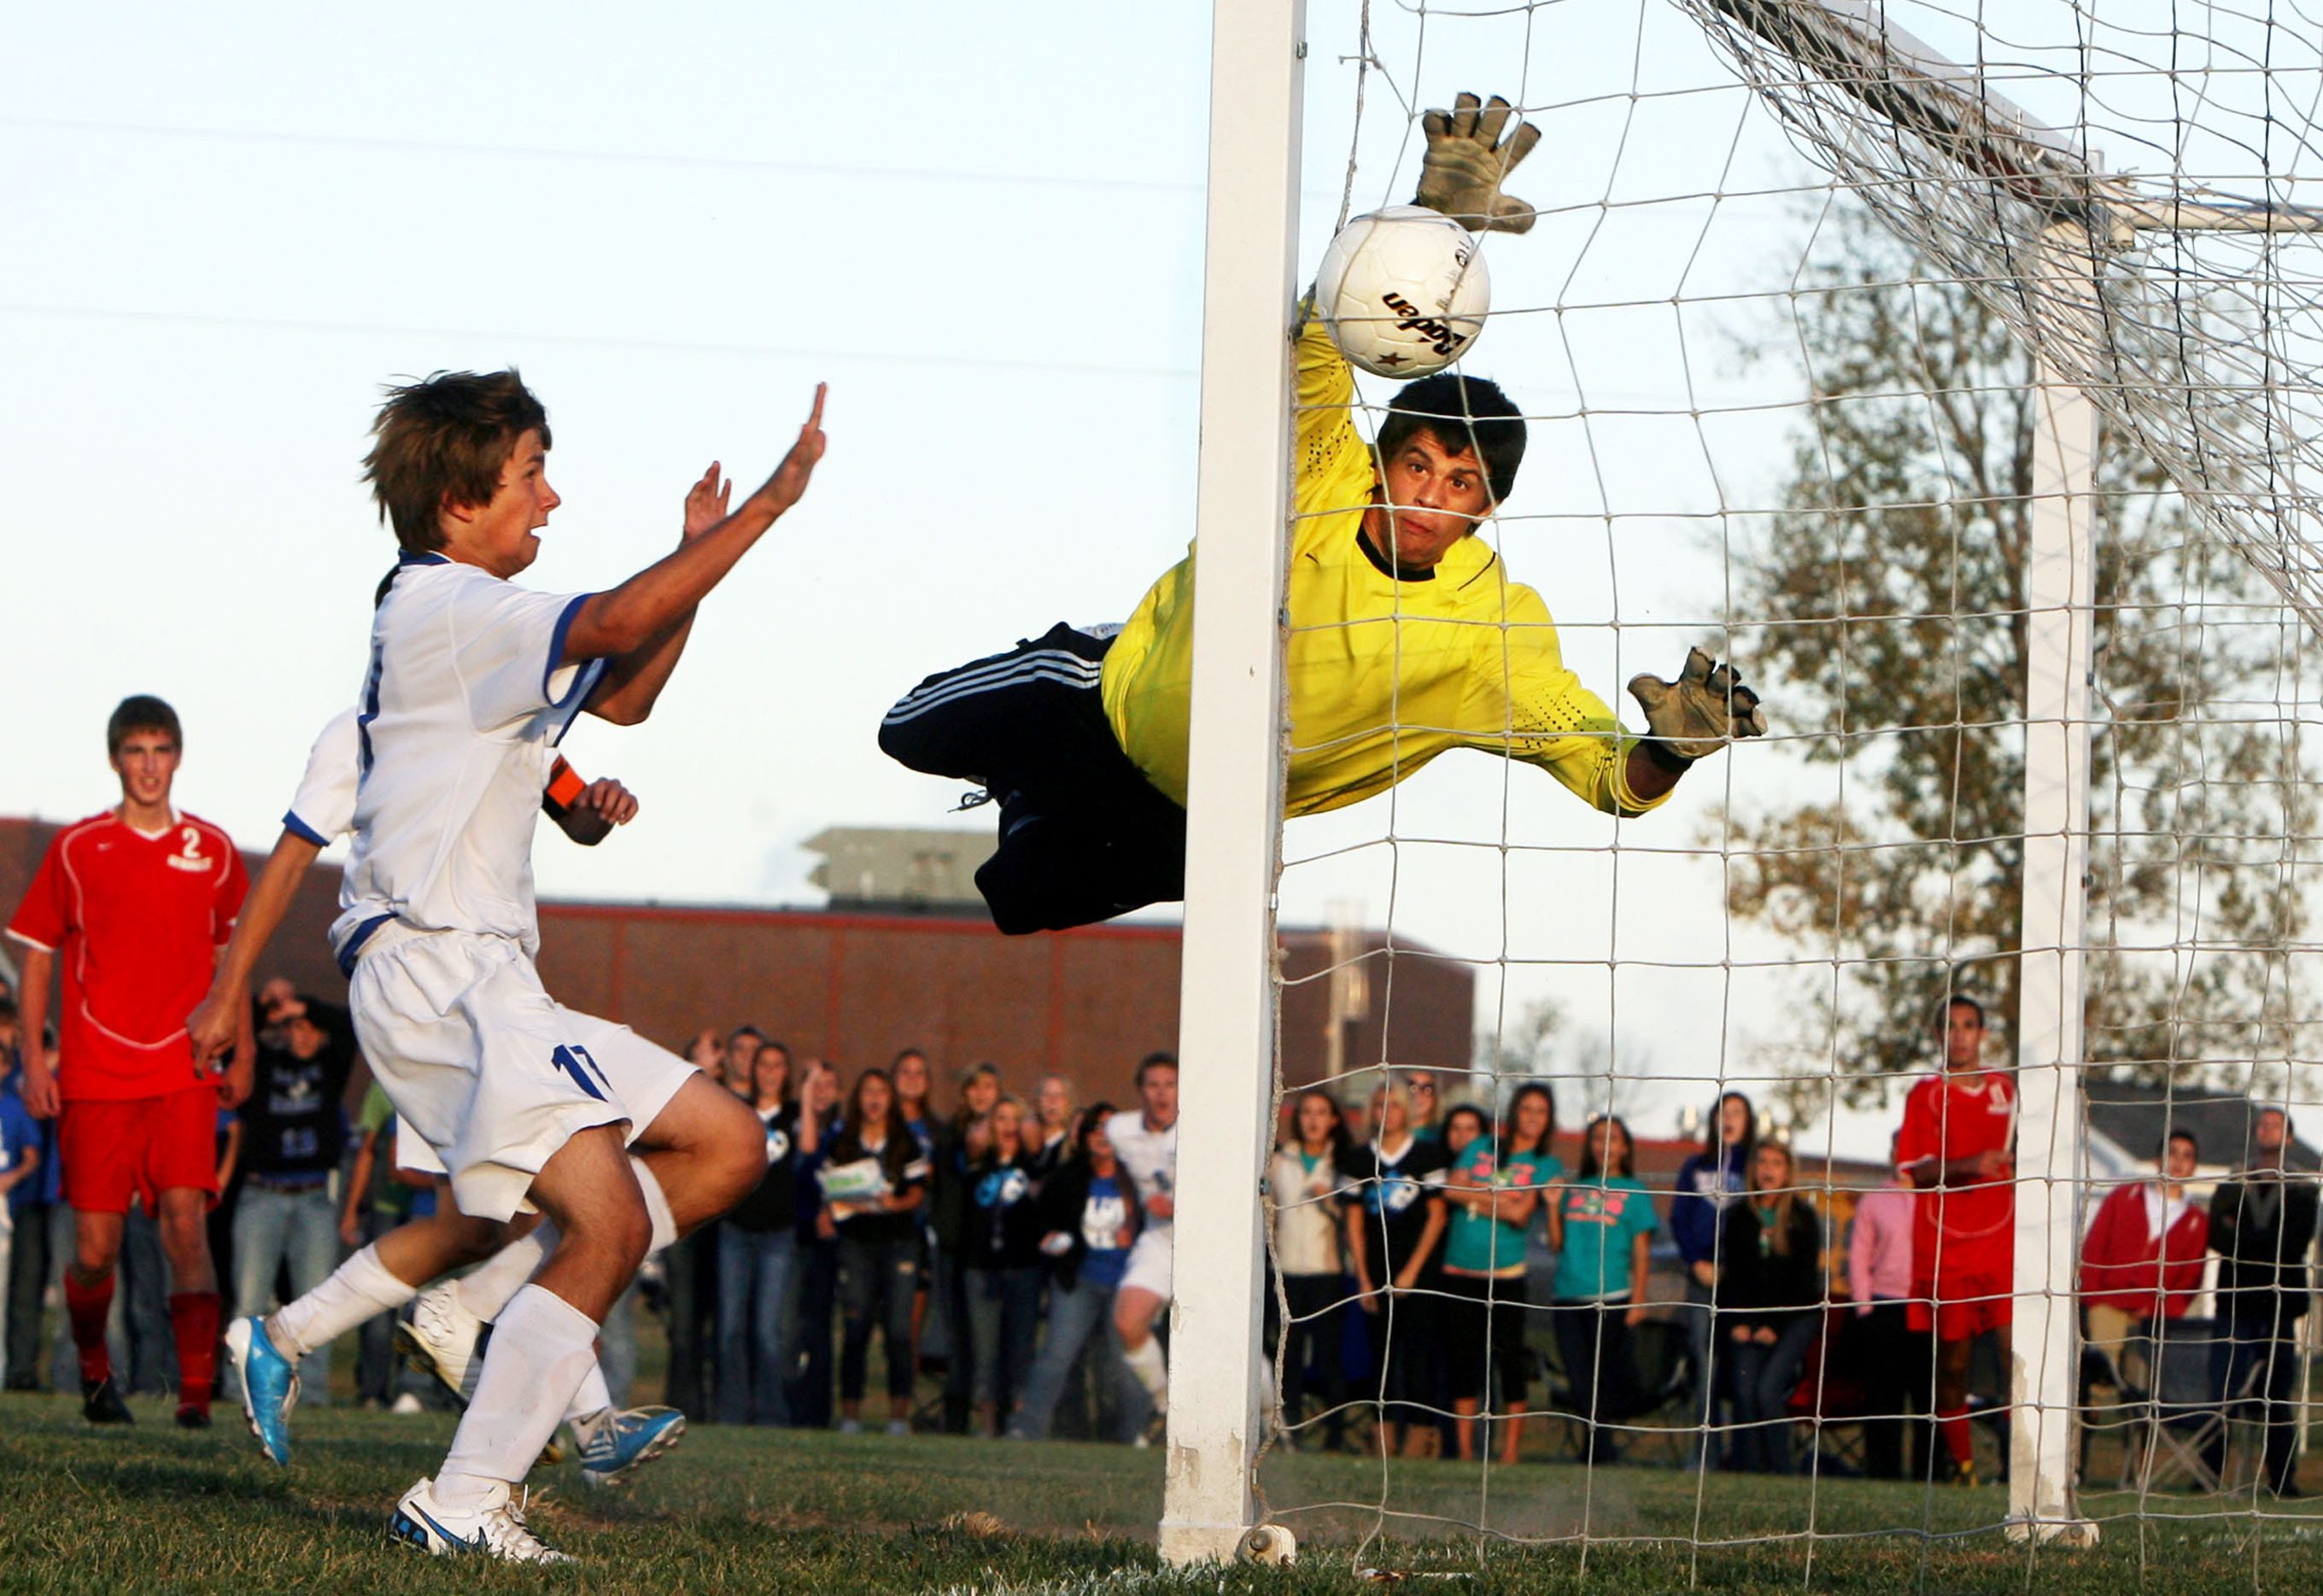 Gibault goalkeeper Auggie Sexauer tries to reach for the game winning goal shot from the opposite corner by Columbia's Blake Byrd during the Illinois Boys Class A Soccer Regional Final at Central Community High School in Breese. Columbia won 1-0. Also pictured is Columbia's Kyle Gudeman (17).